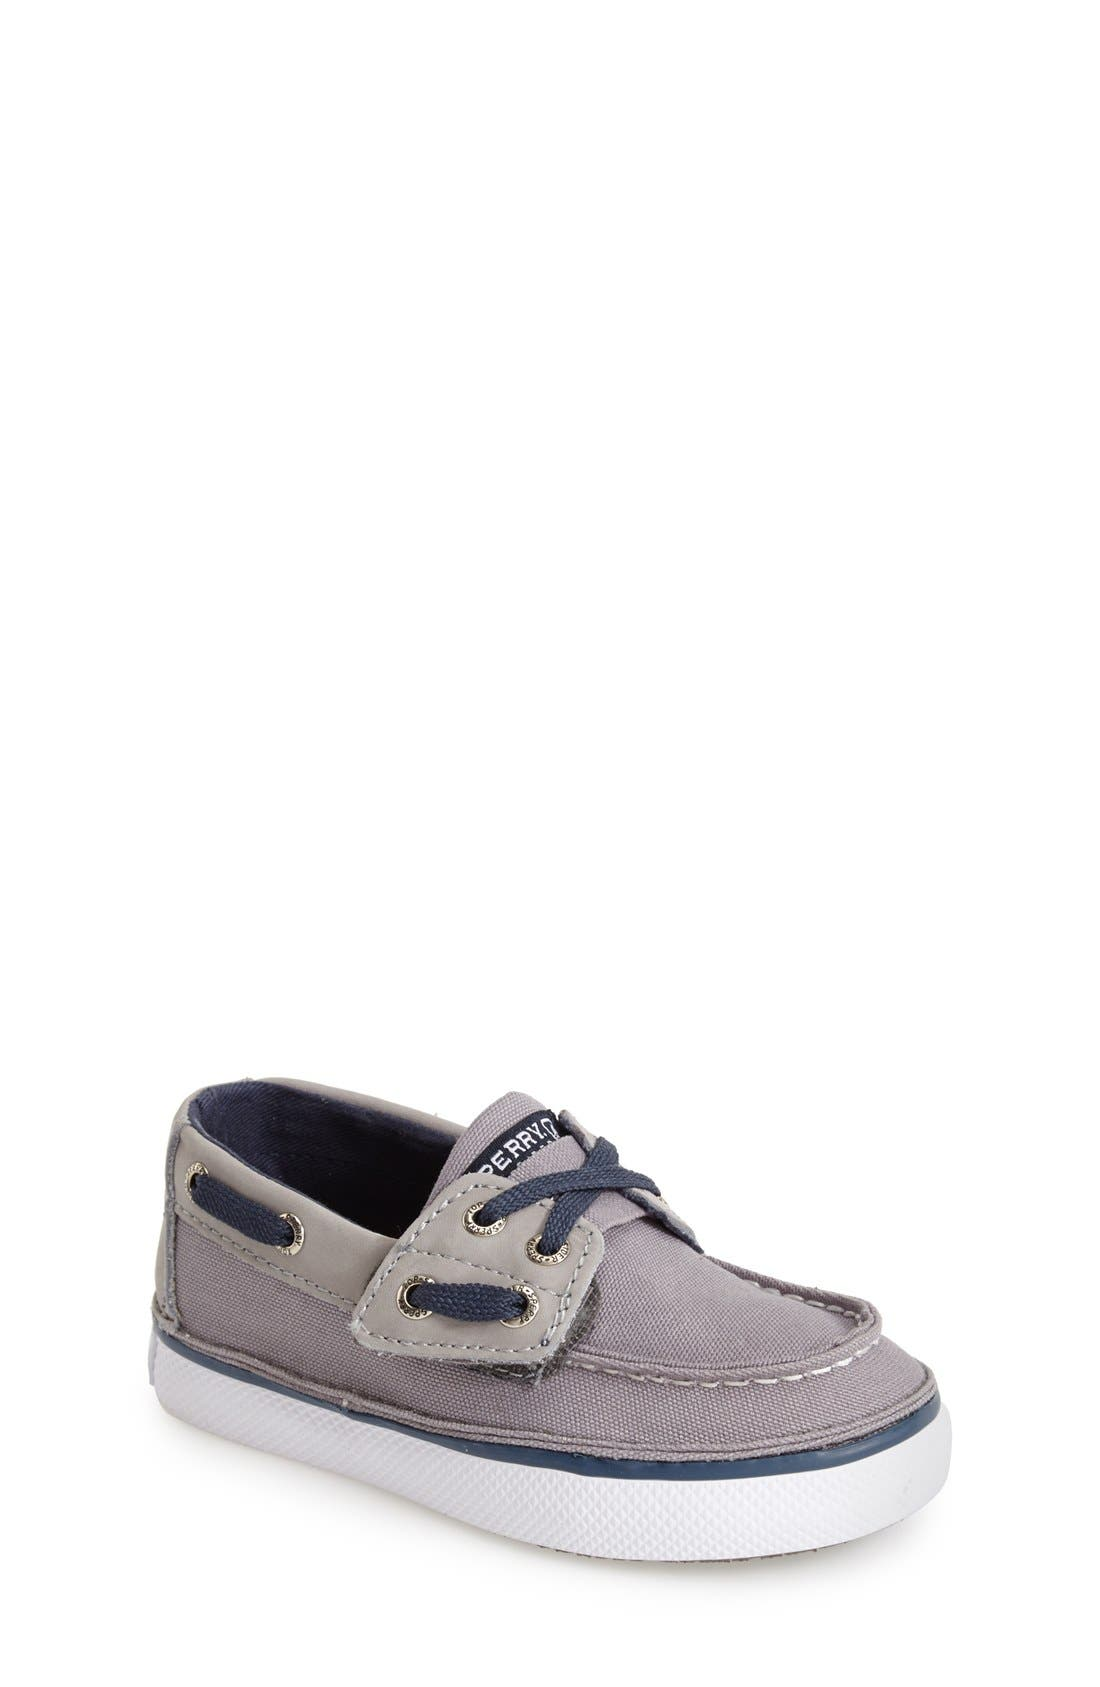 Main Image - Sperry Kids 'Cruz Jr.' Slip-On Boat Shoe (Walker & Toddler)